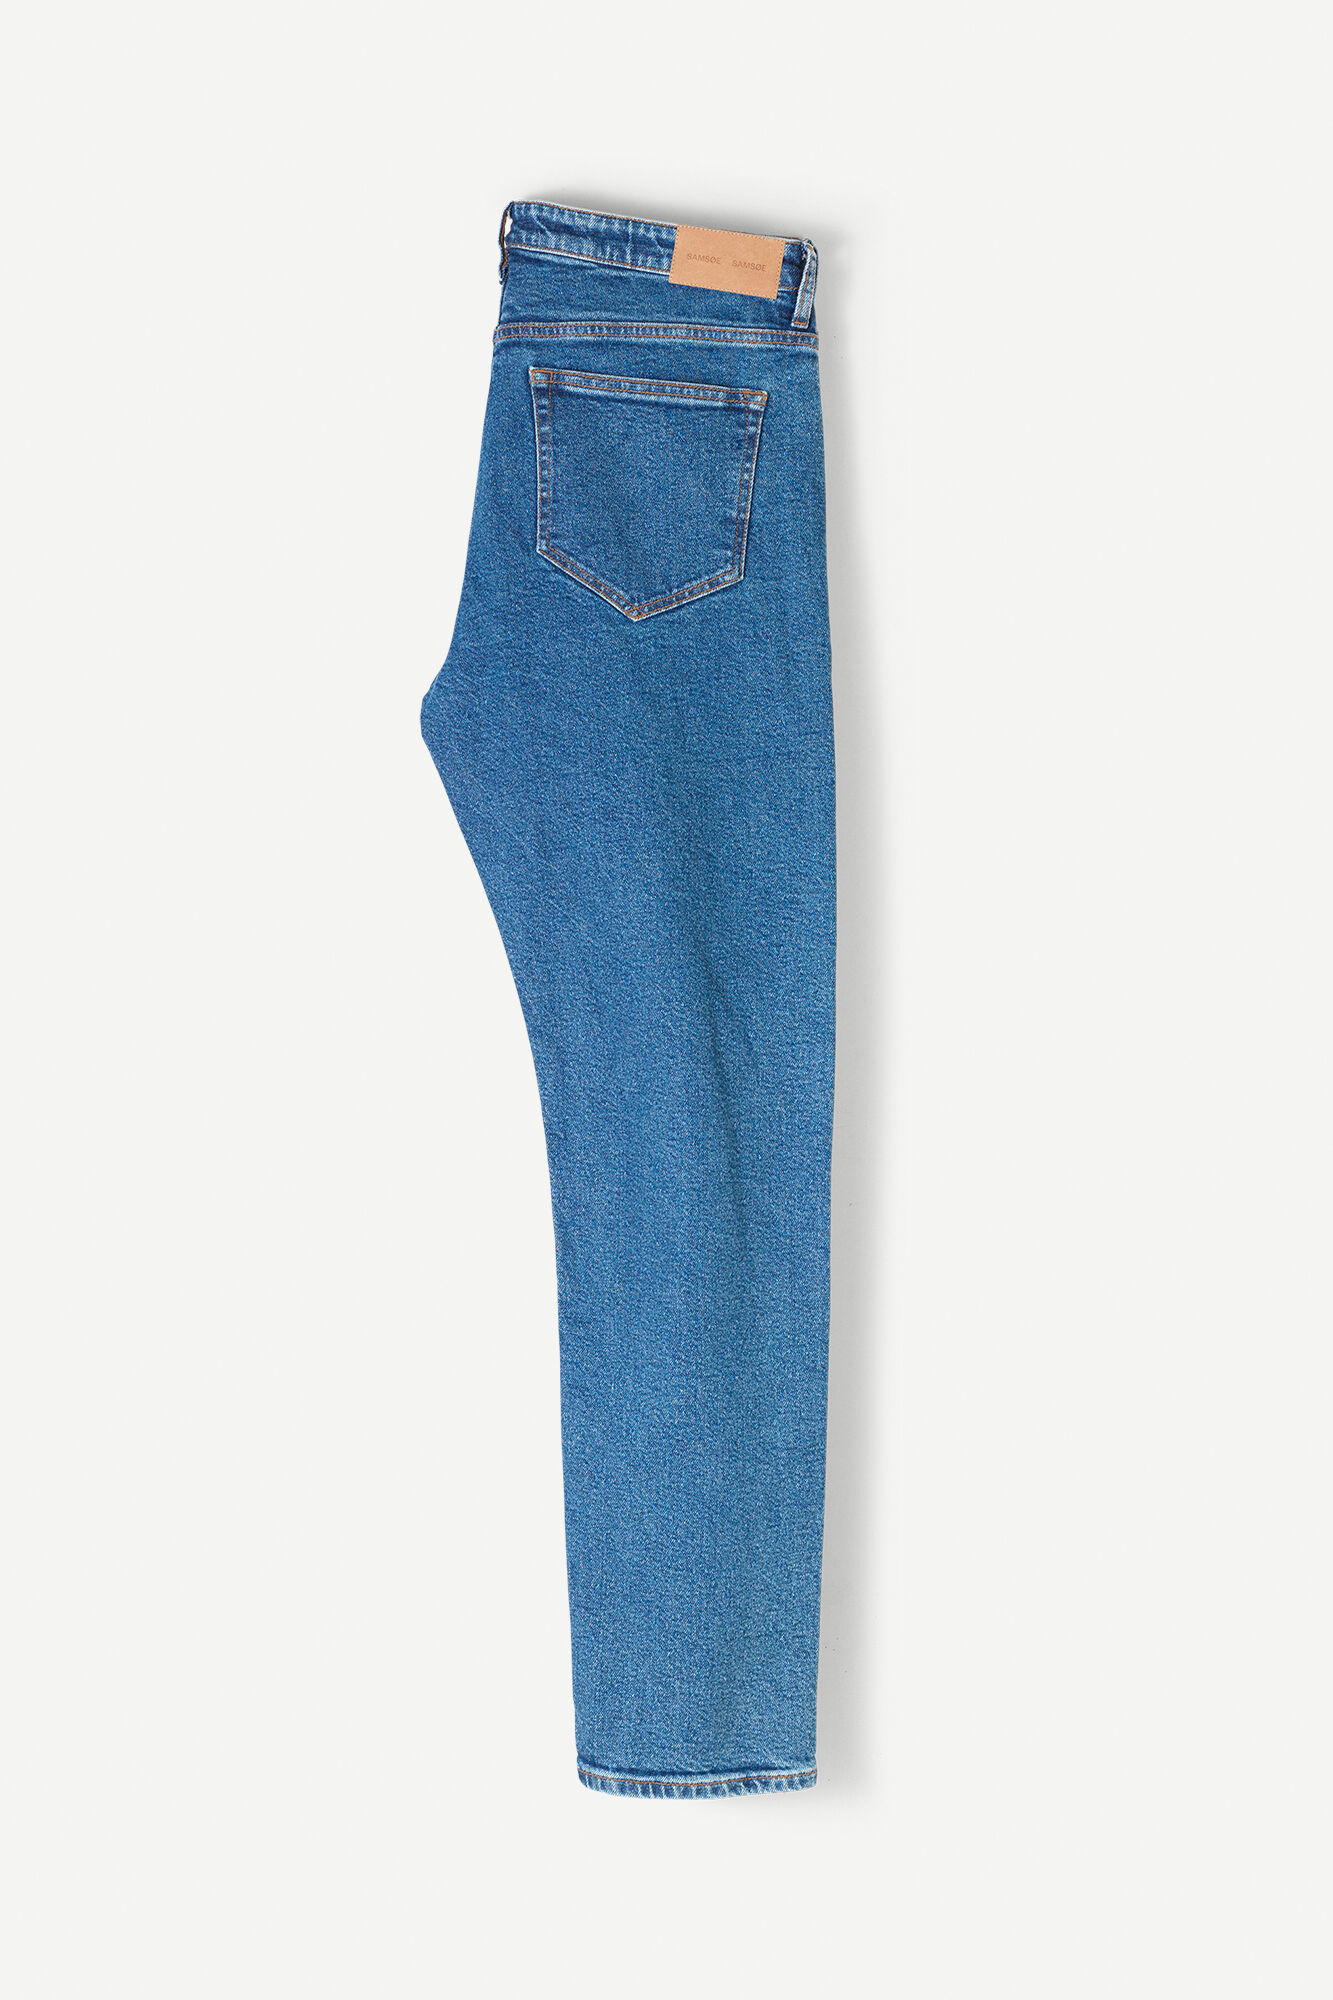 Rory jeans 11359